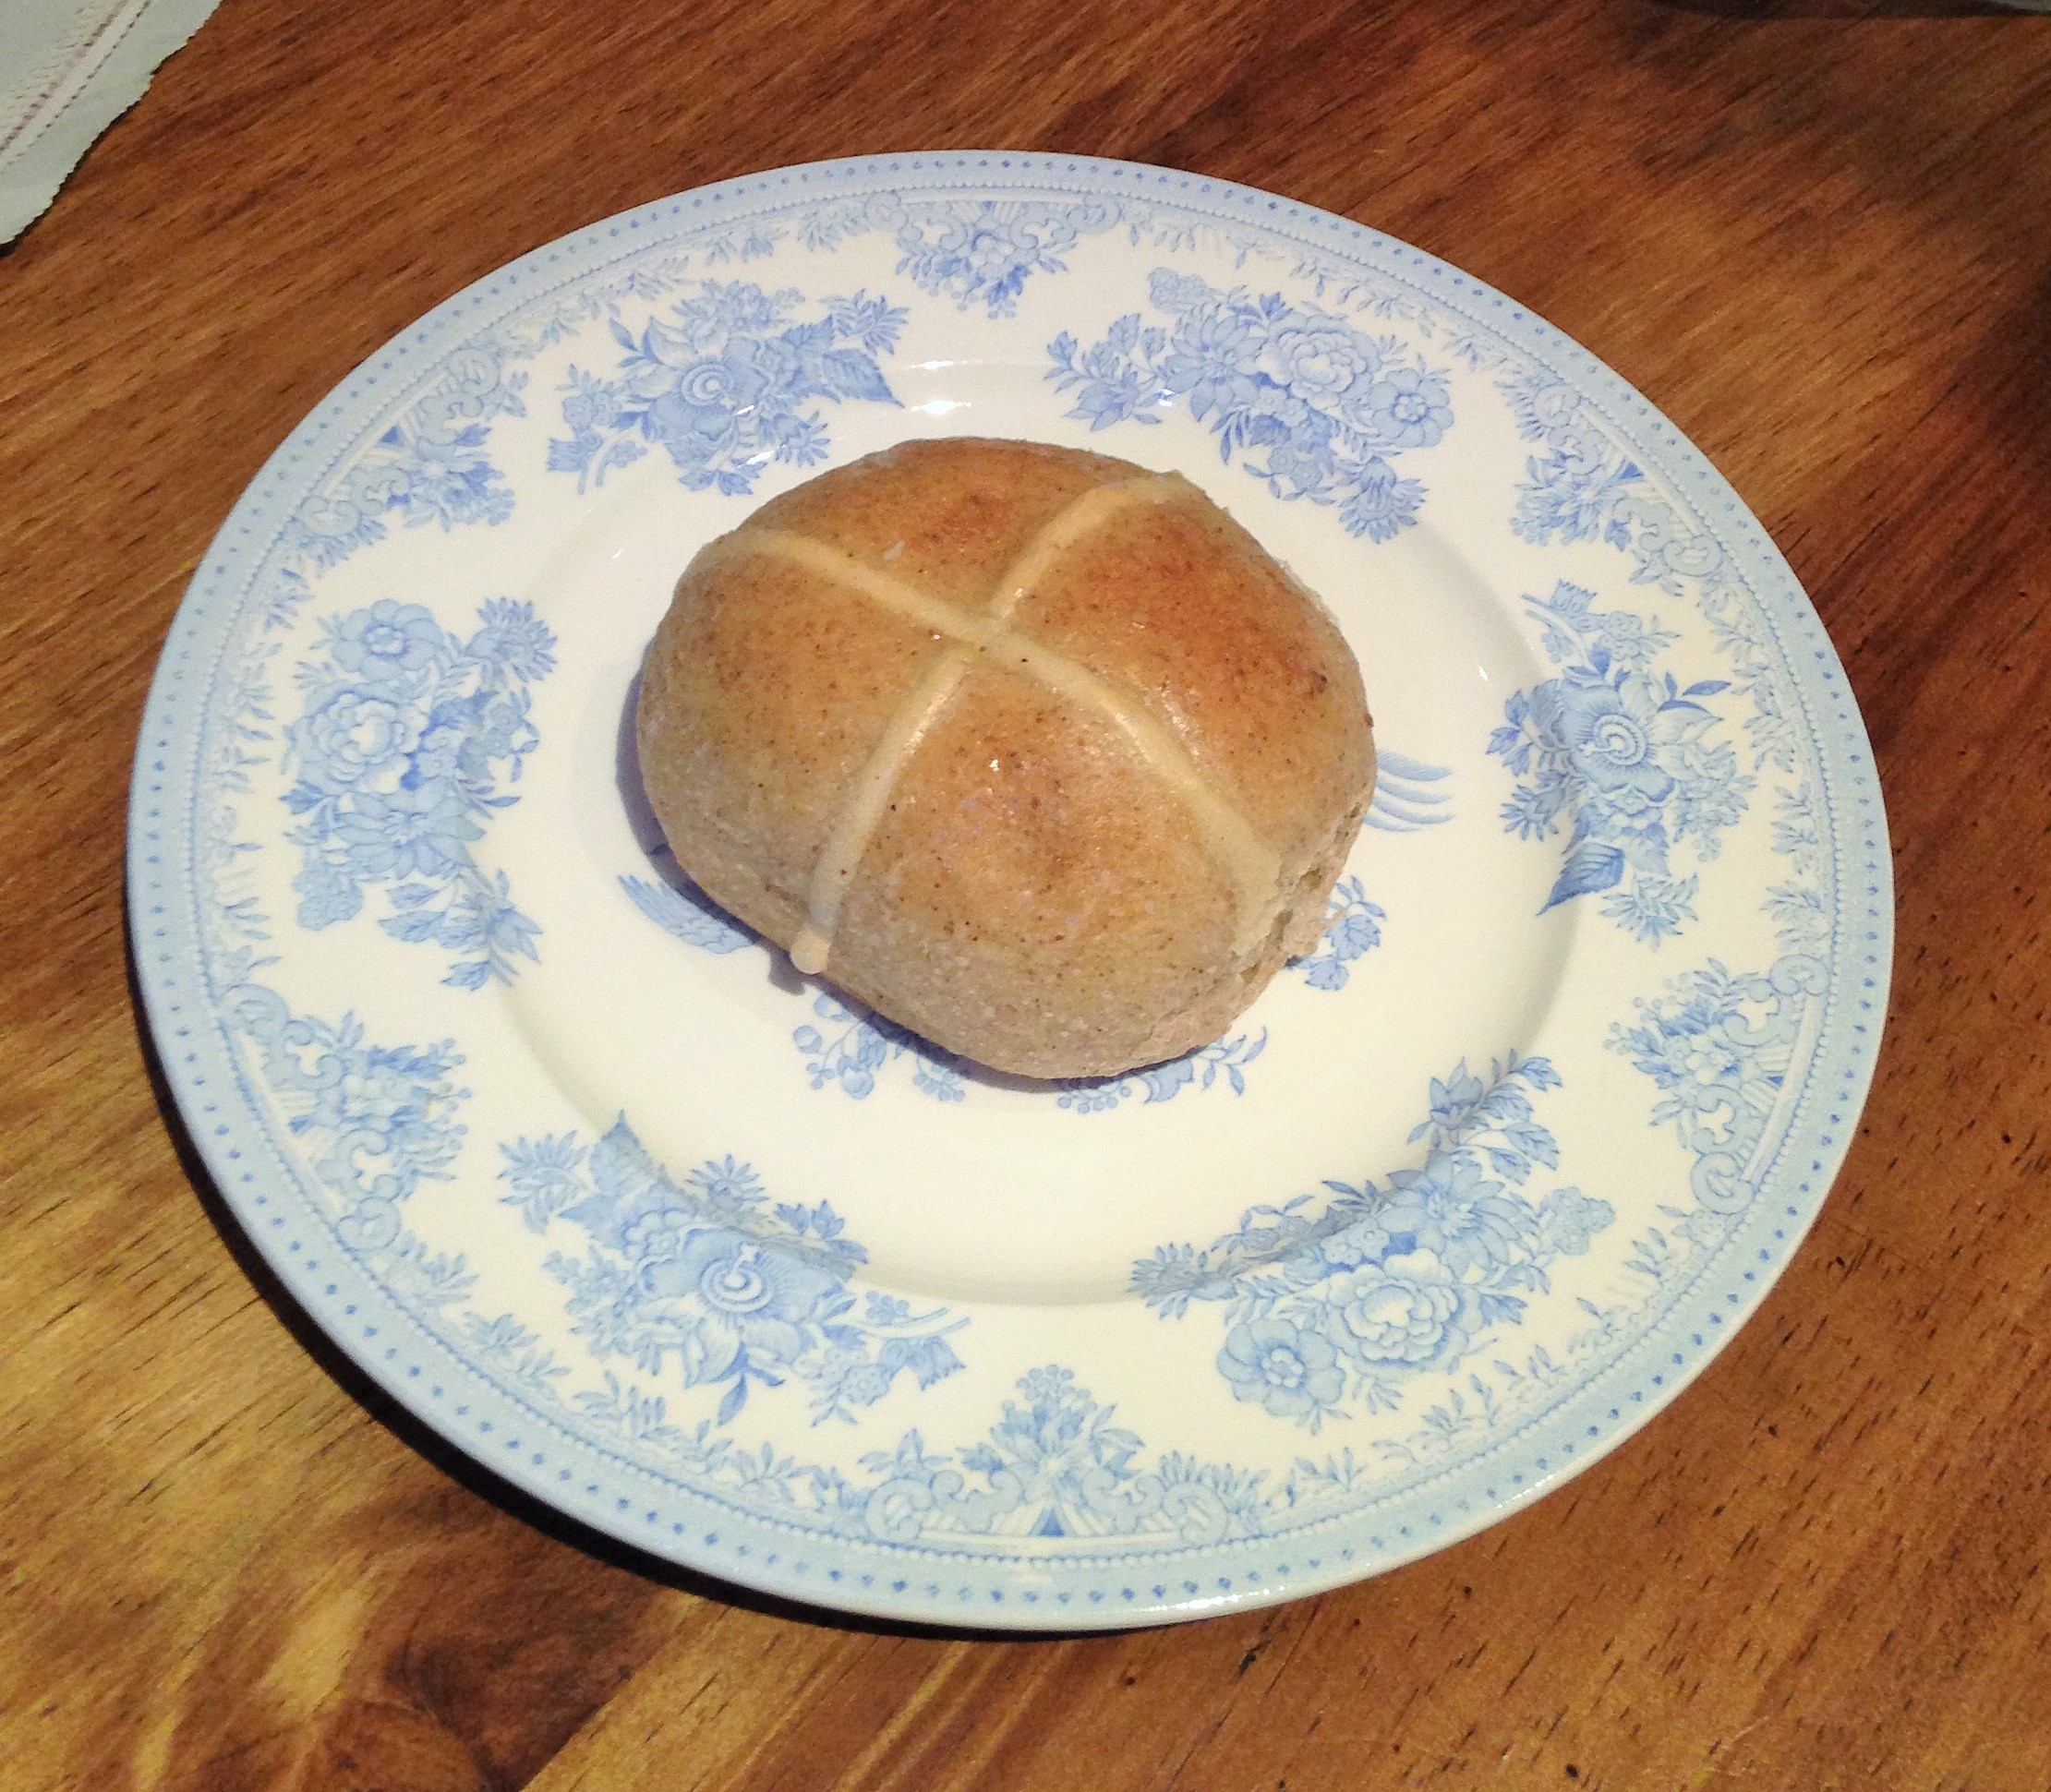 hot cross bun from Kennington Bakery - kenningtonrunoff.com